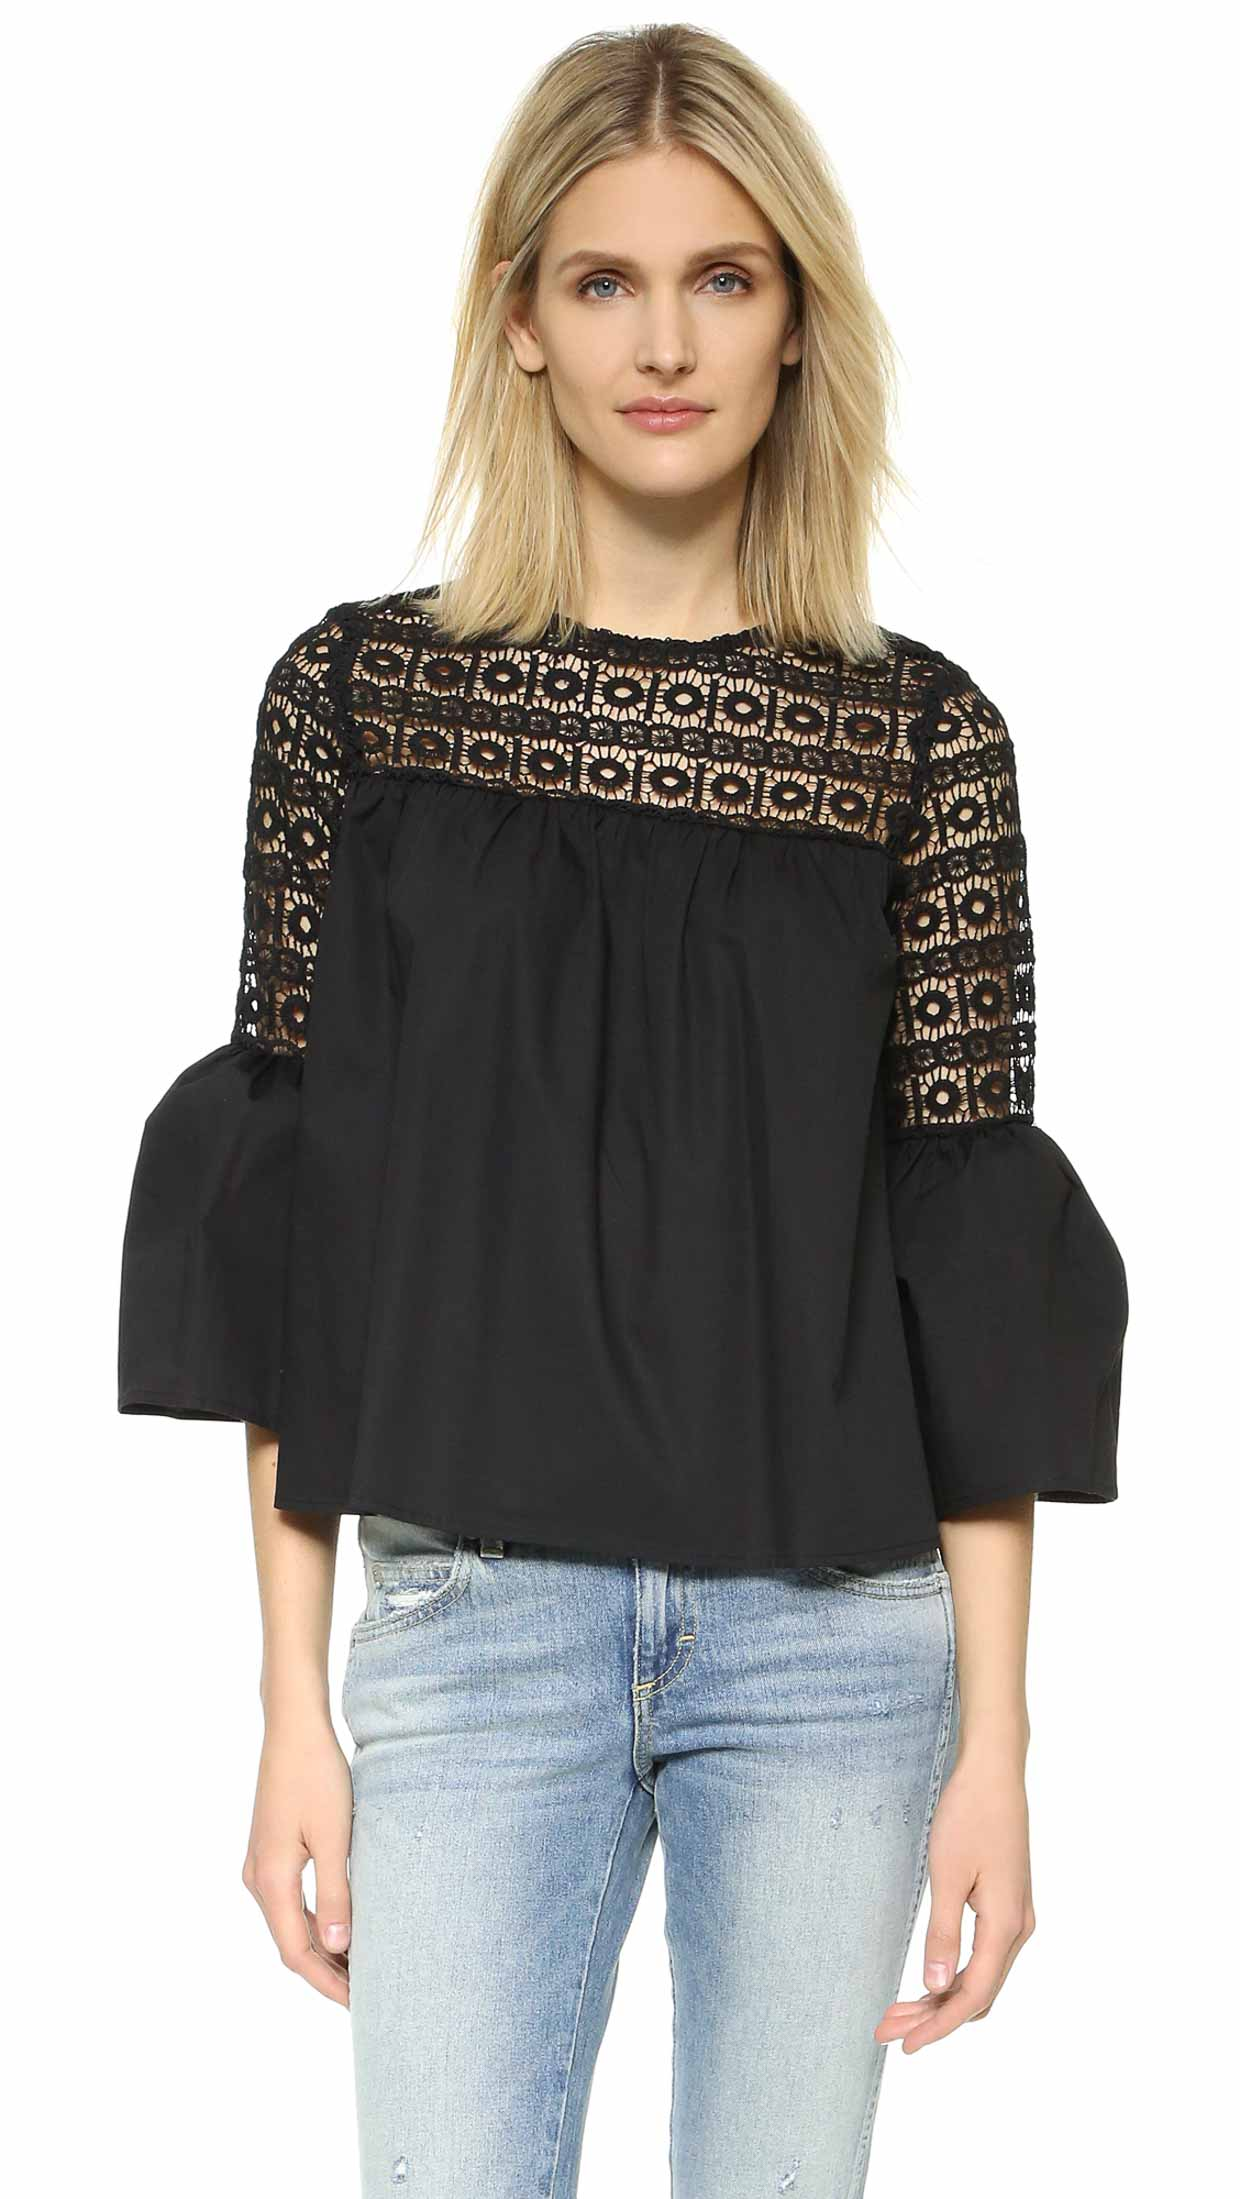 4158561d234 Weekly Weakness - The Best Affordable Shopbop Brands - Poor Little It Girl